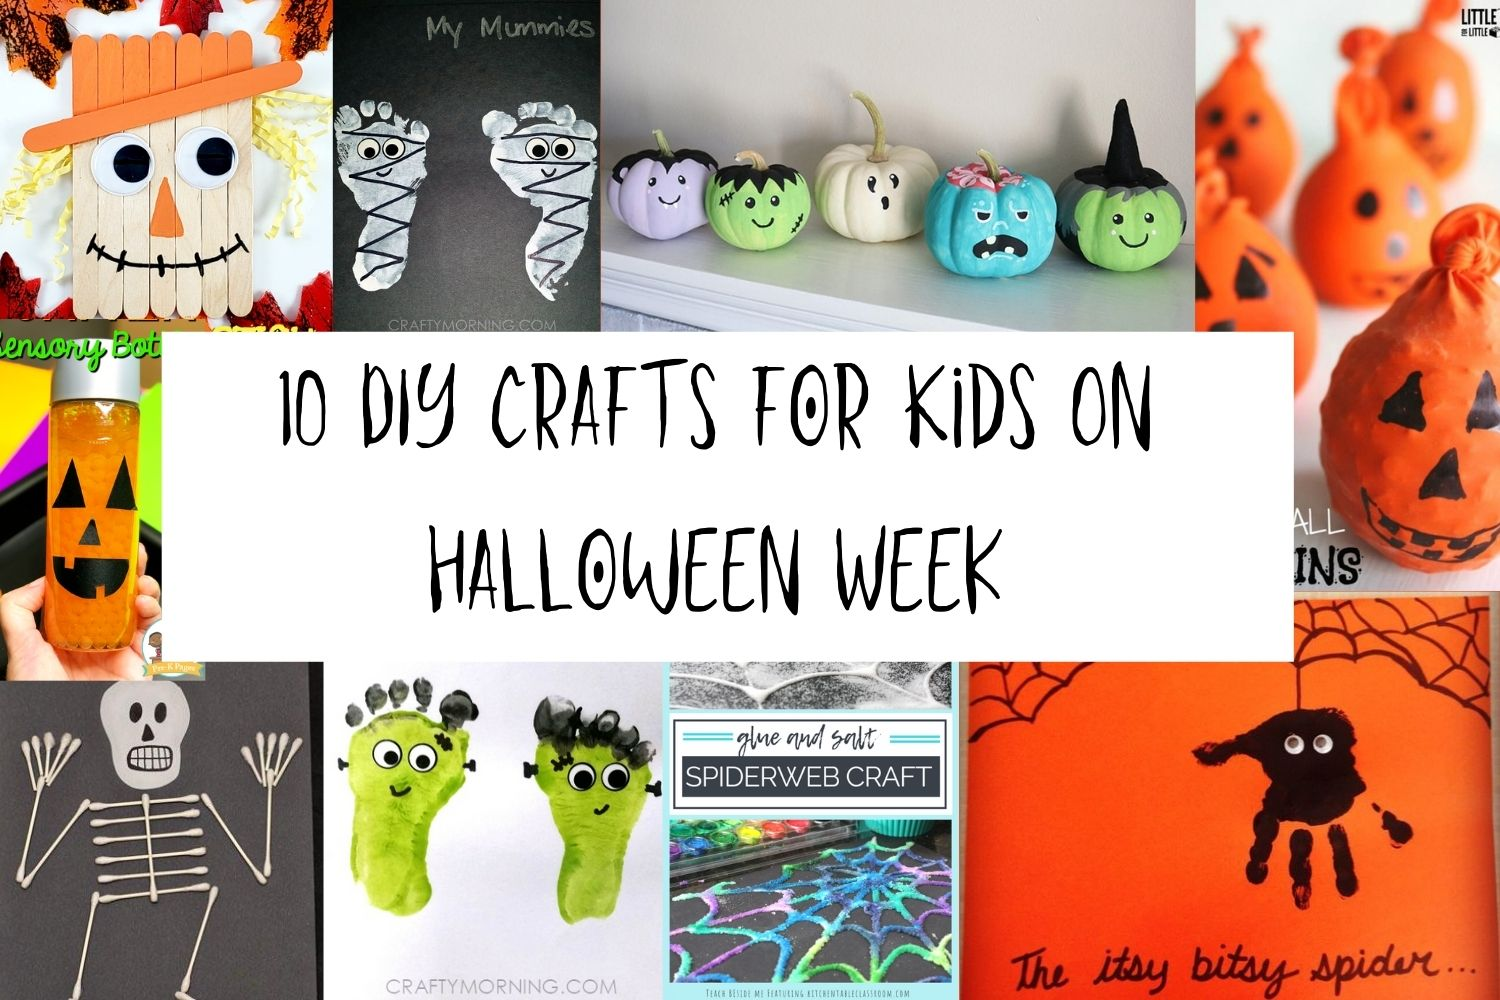 10 DIY Craft's for Kids on Halloween Week